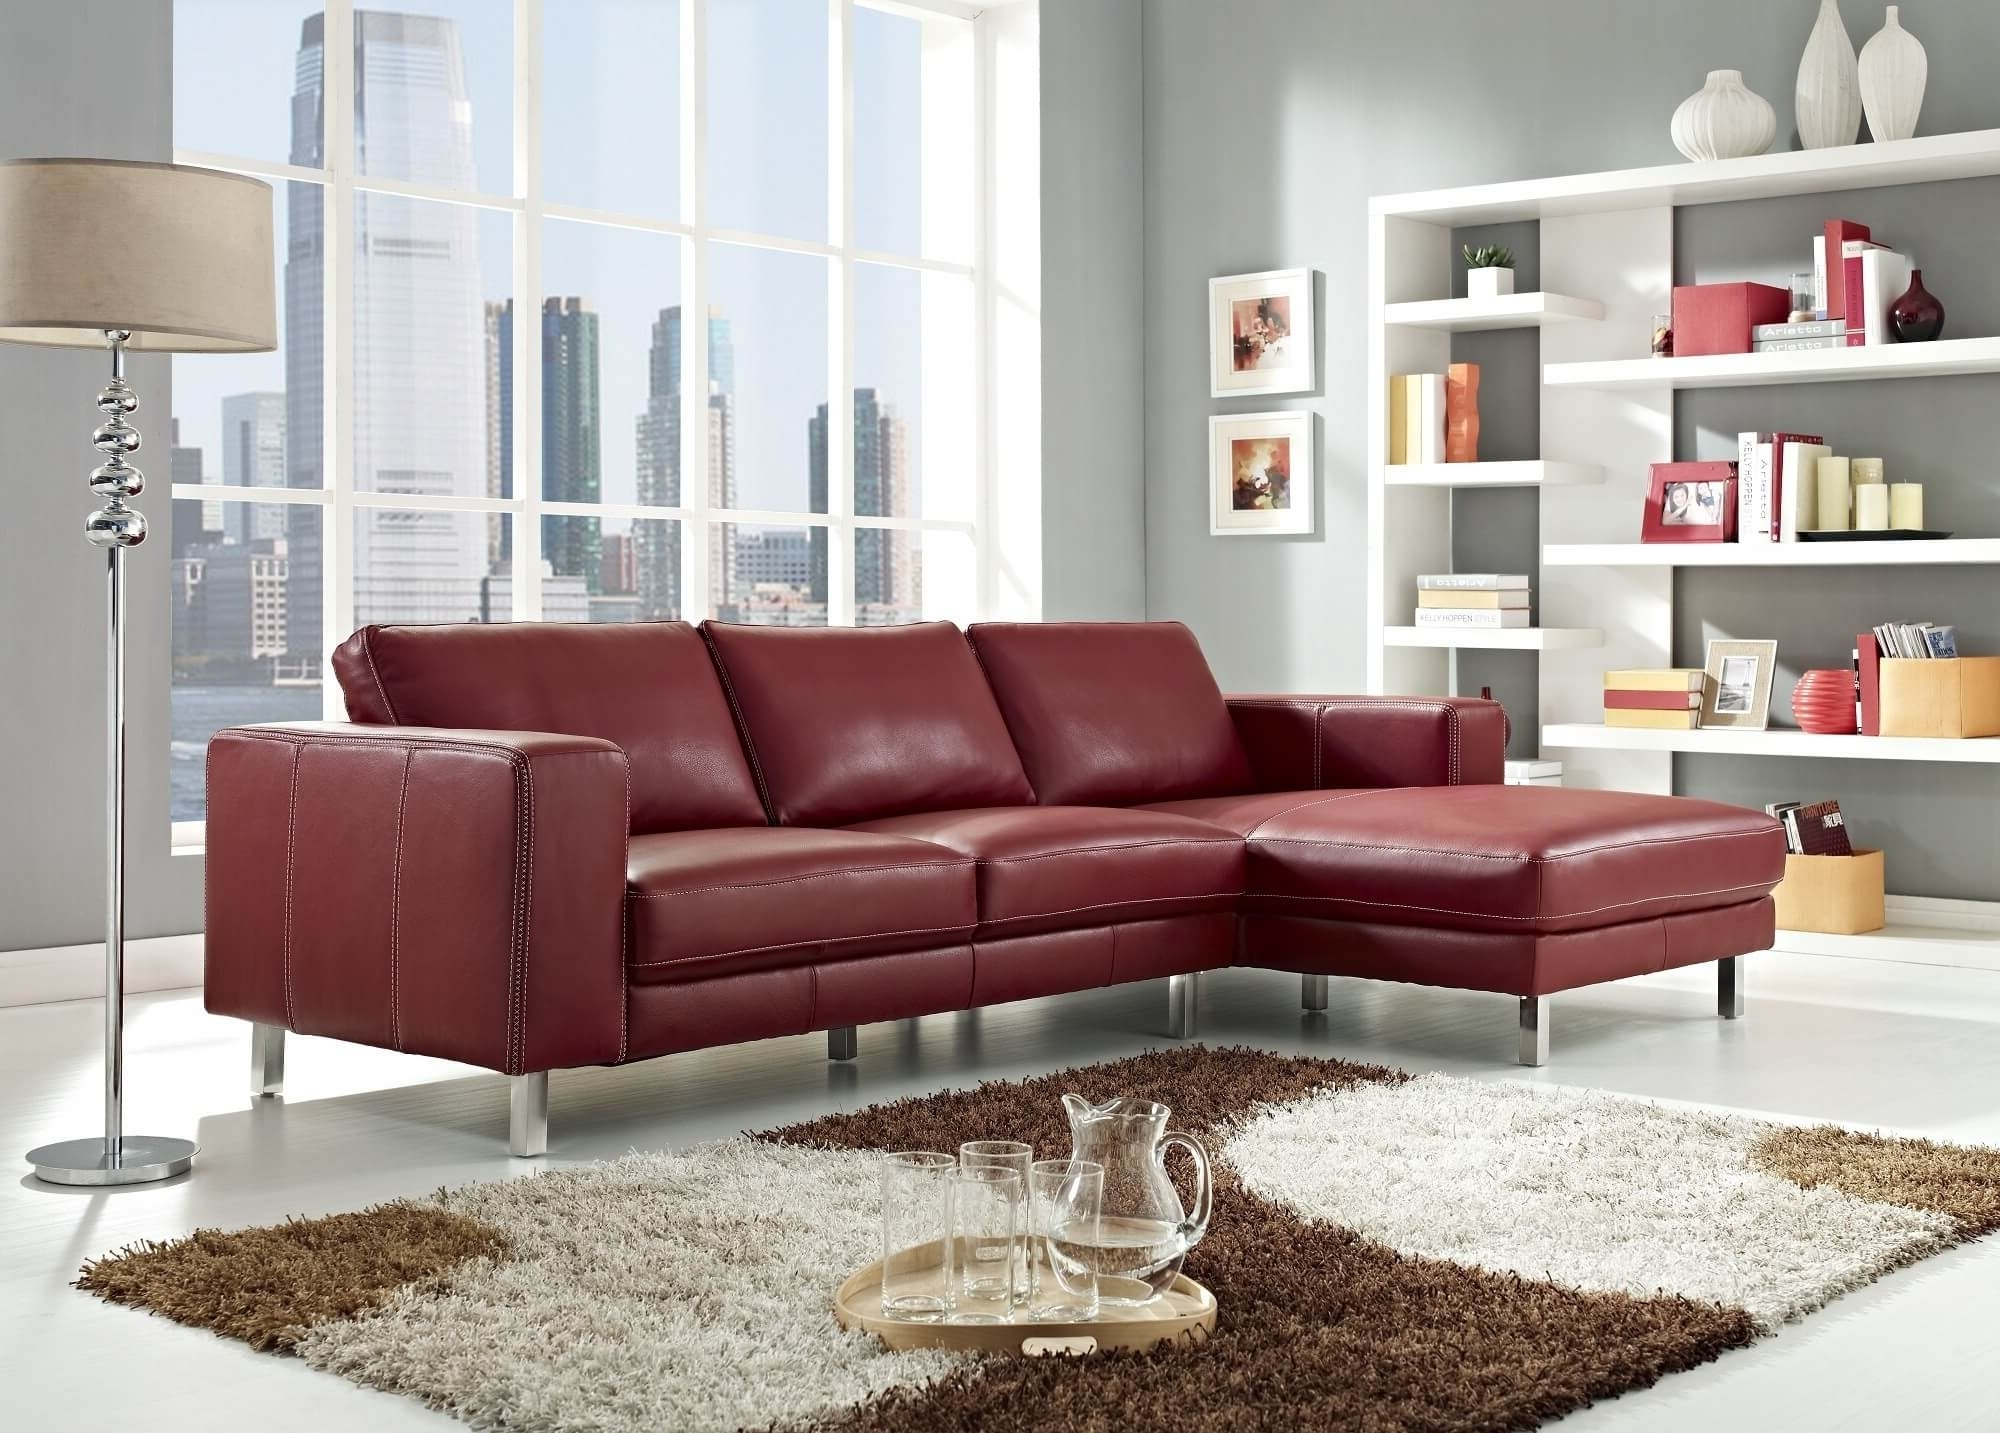 2017 Stylish Modern Red Sectional Sofas In Small Red Leather Sectional Sofas (View 2 of 15)